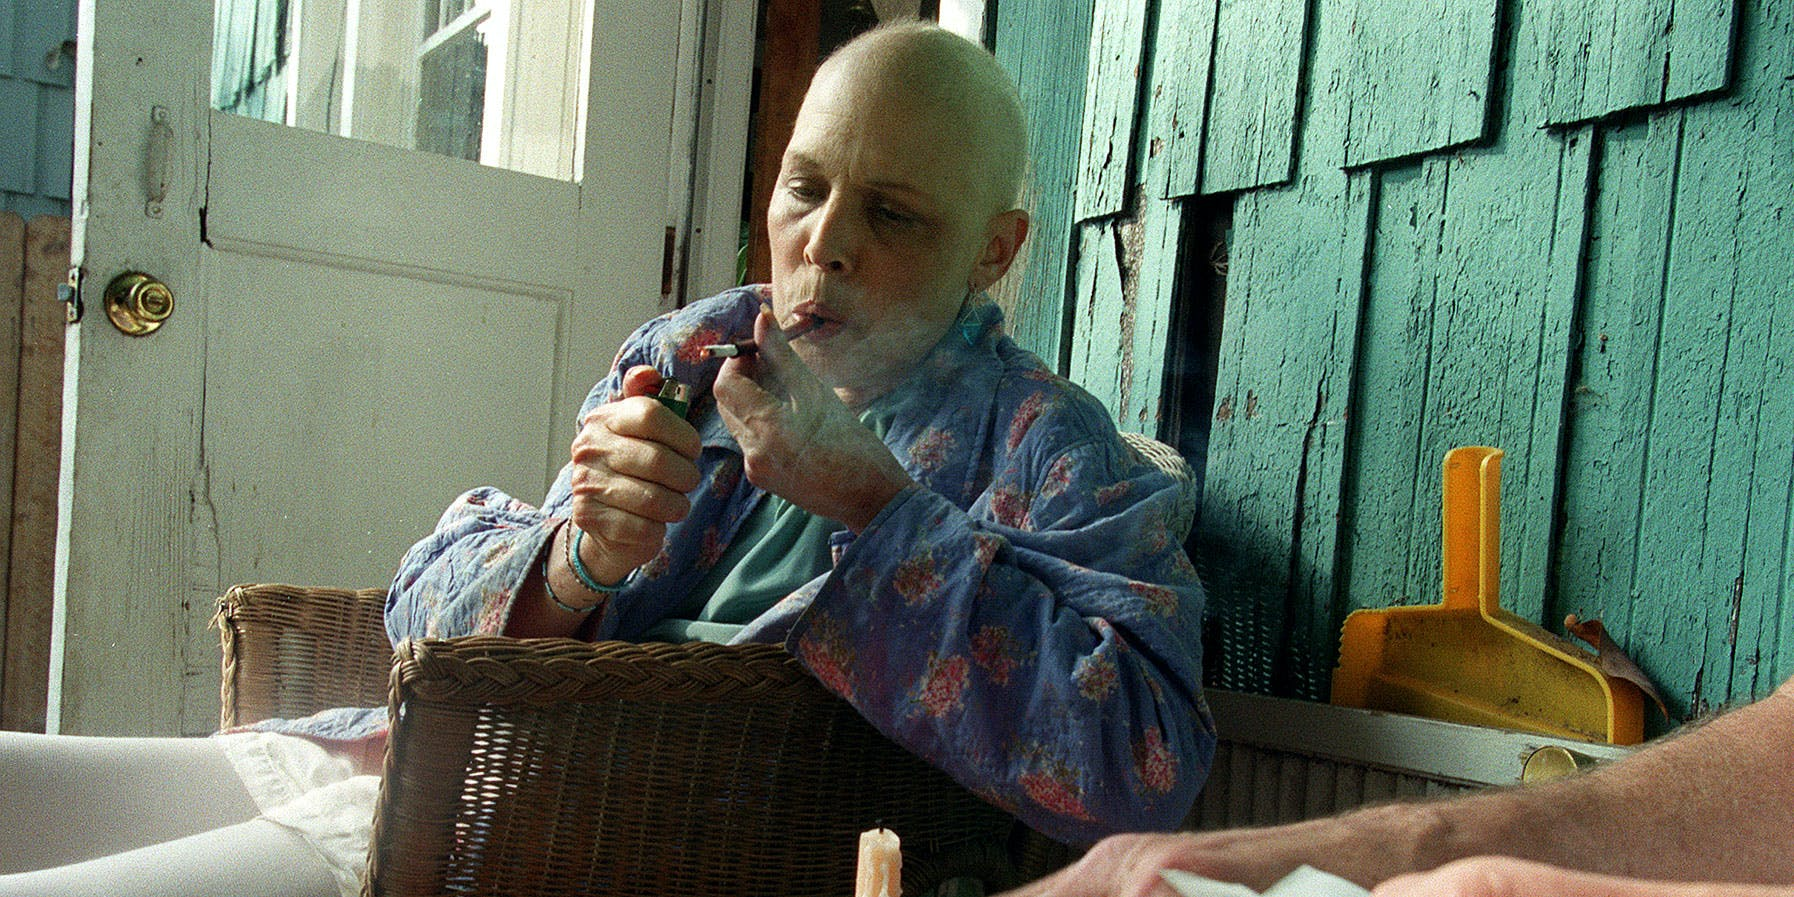 Woman with ovarian cancer smoking cannabis